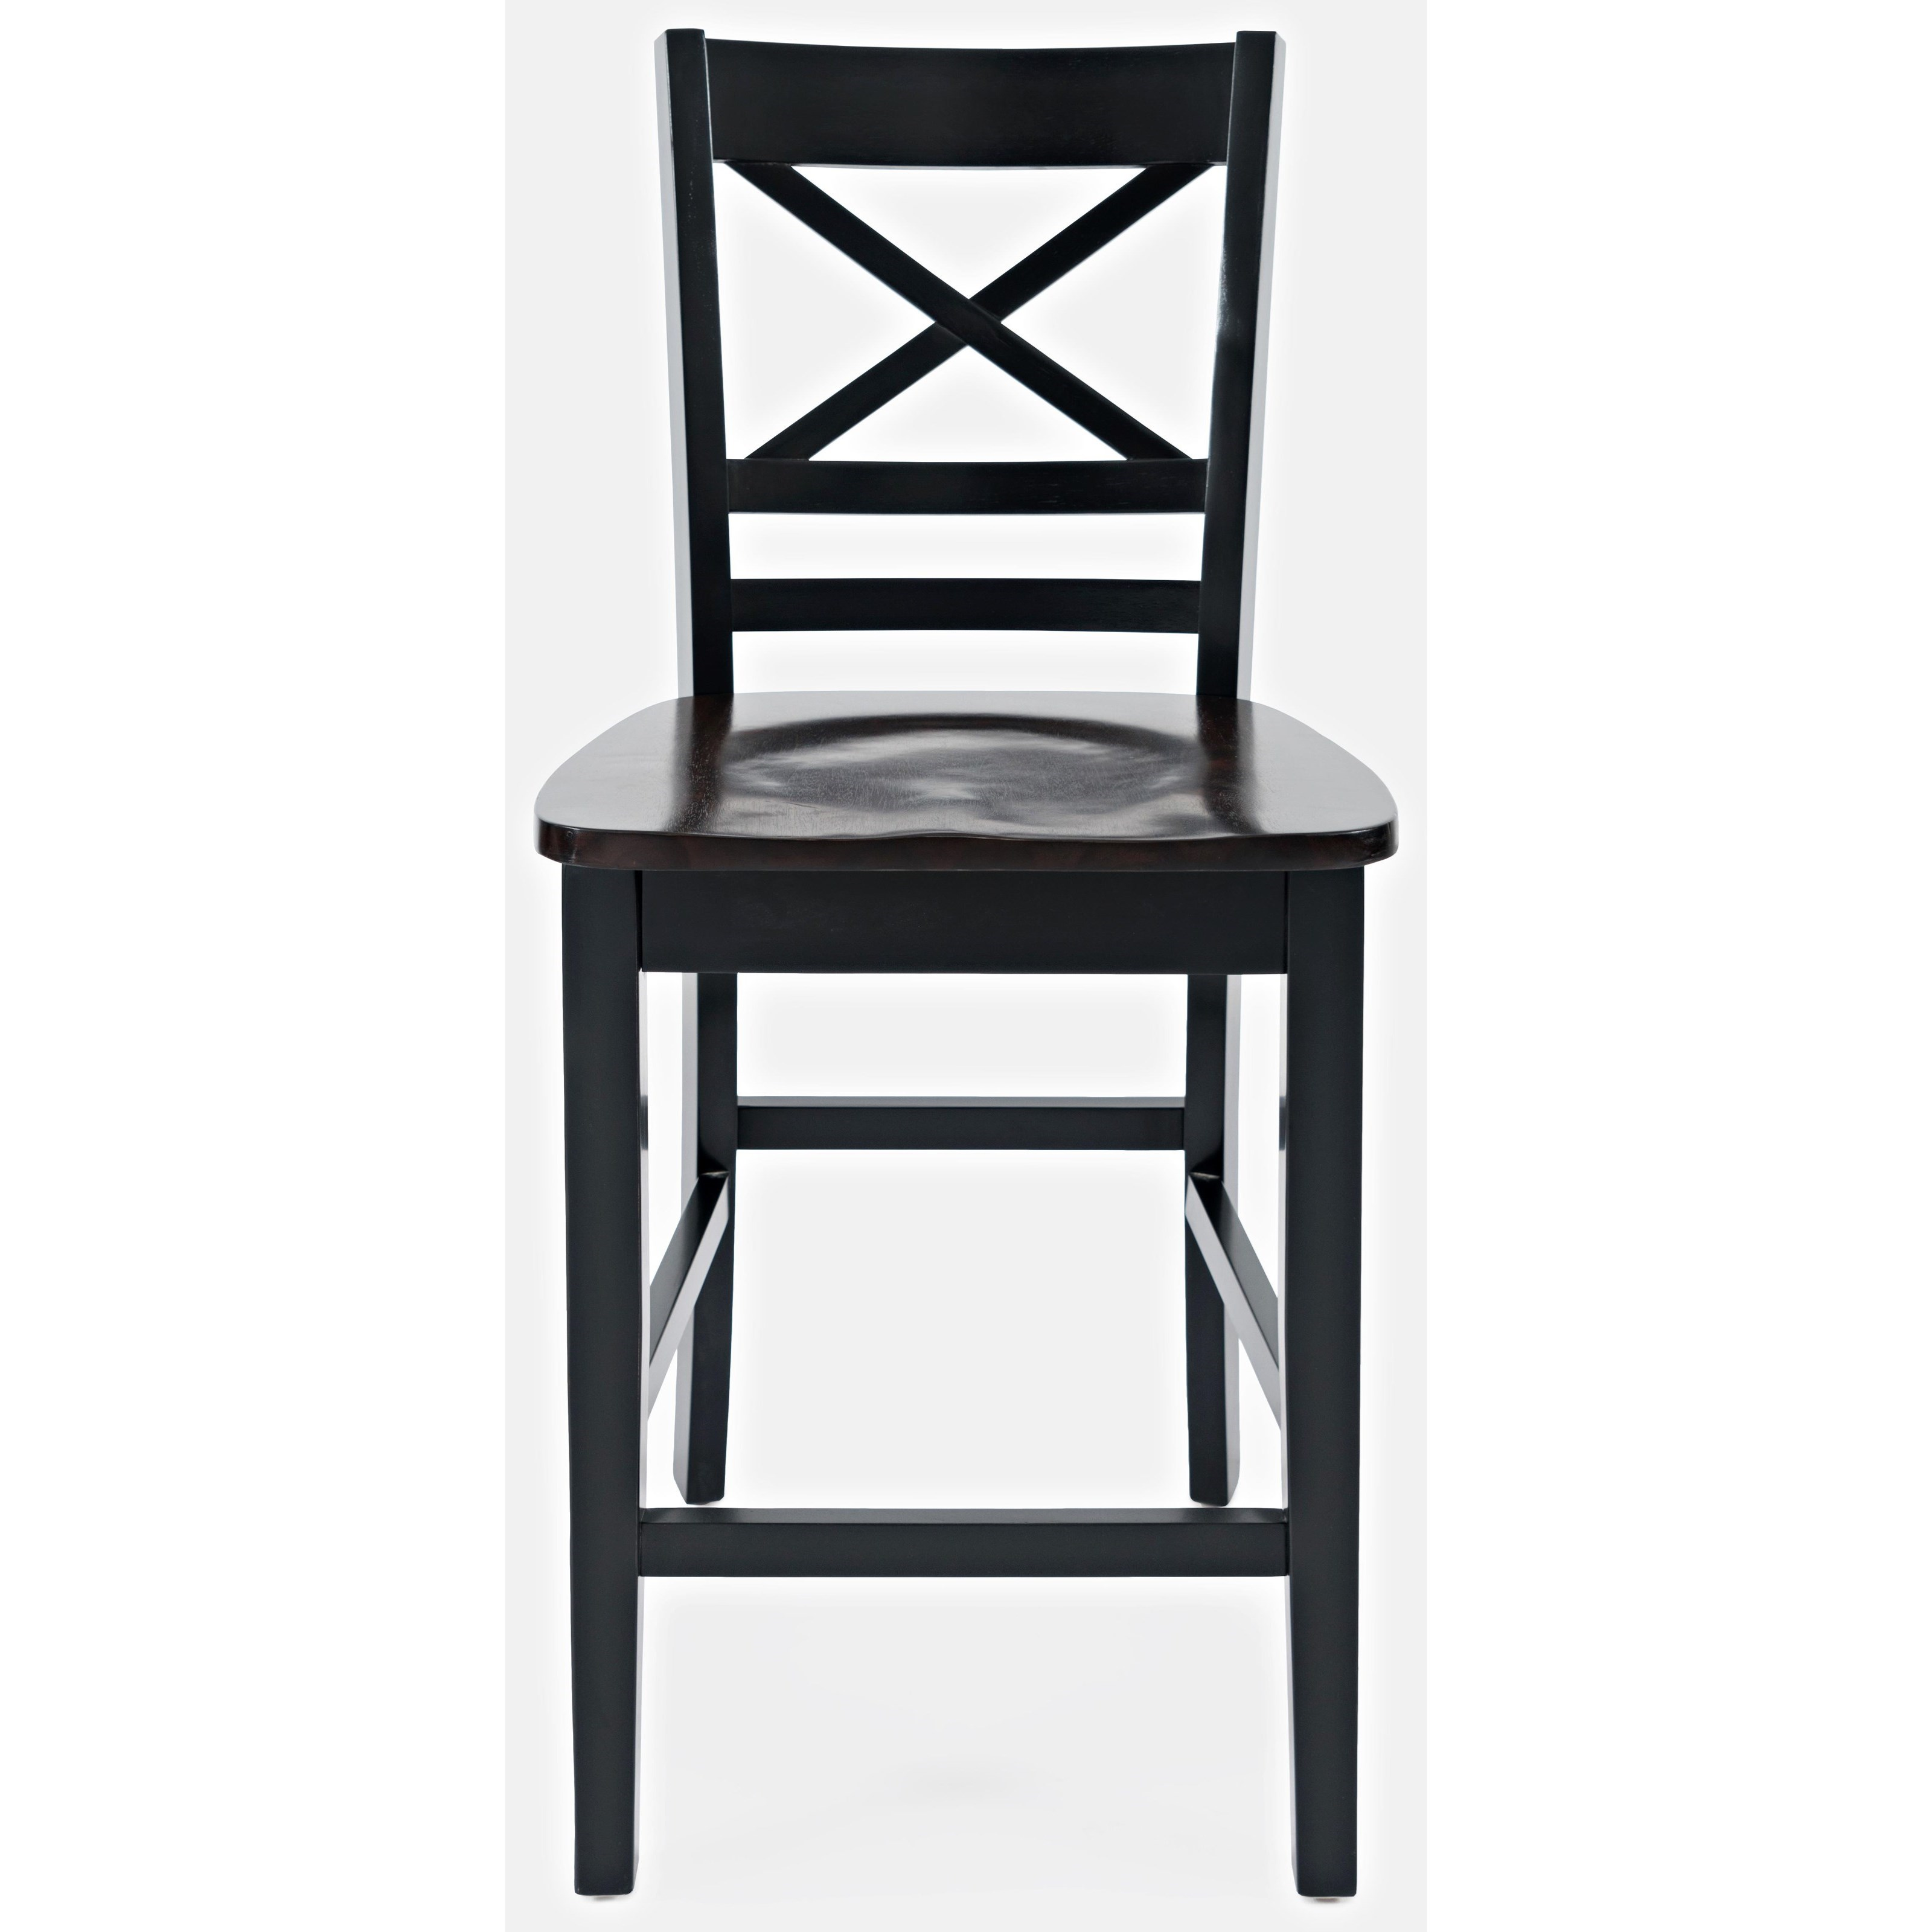 Asbury Park X-Back Stool by Jofran at Home Furnishings Direct